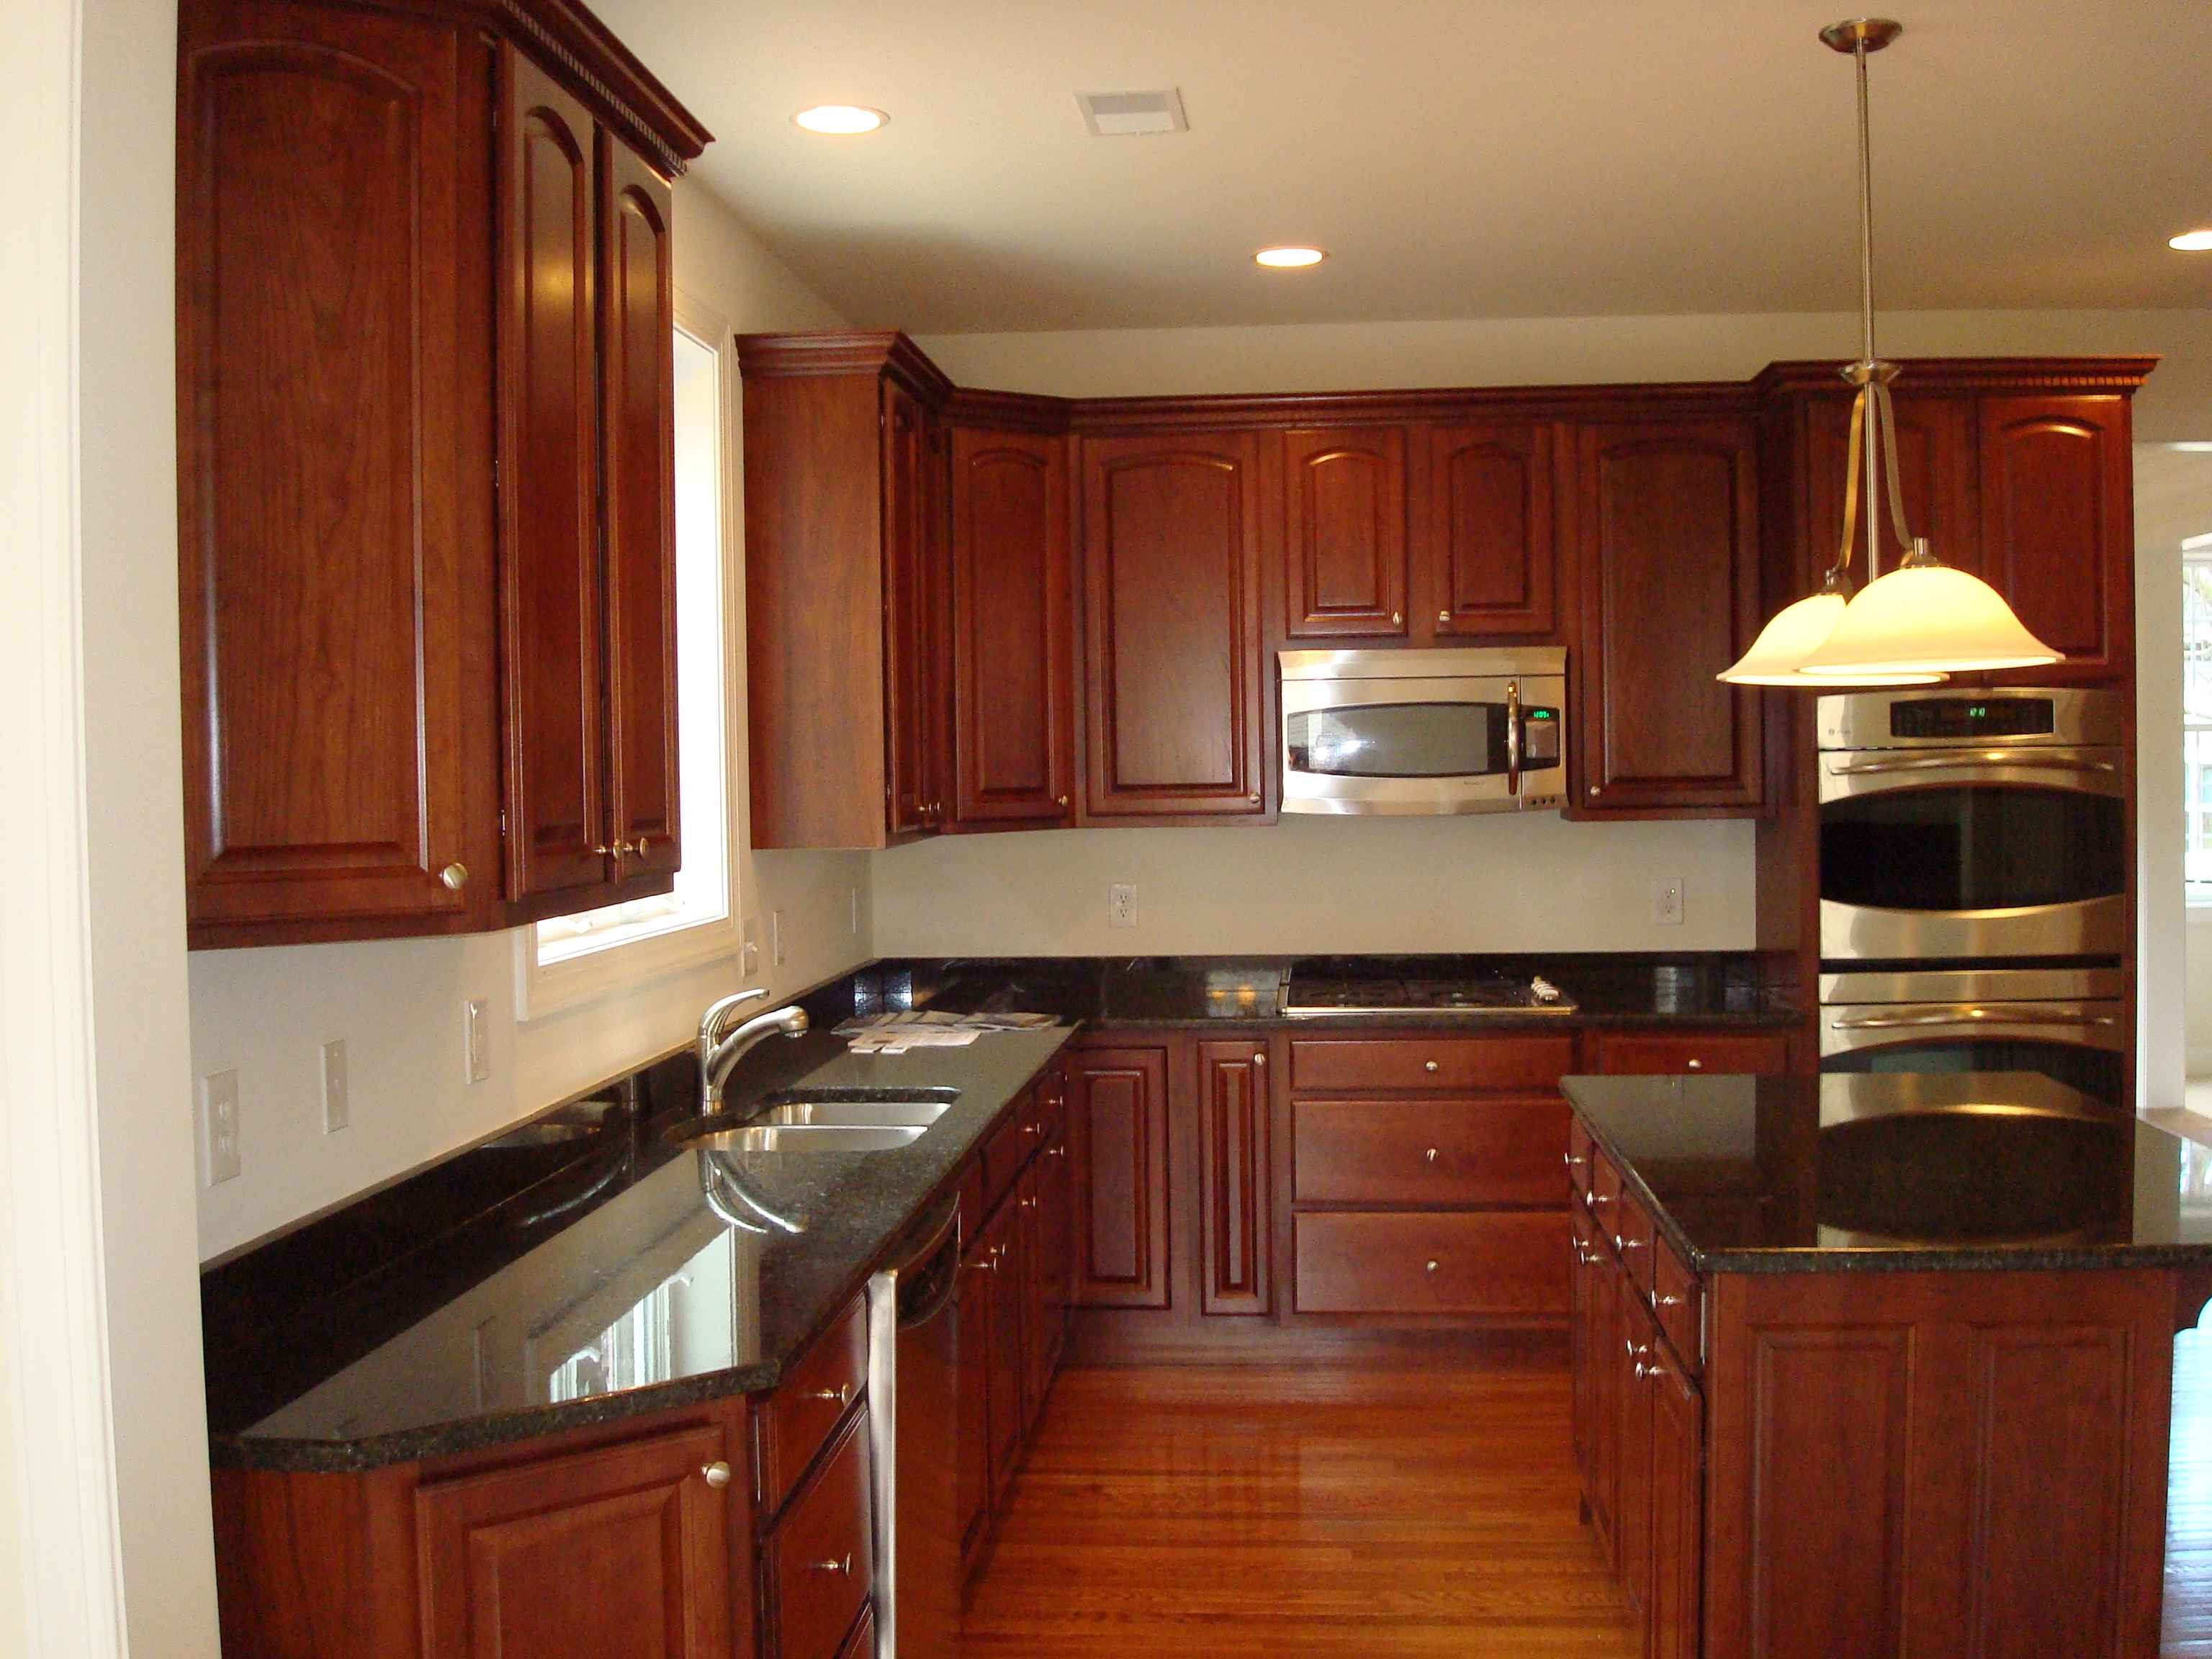 Kitchens and bathrooms renovation kitchen remodeling for Kitchen and bathroom